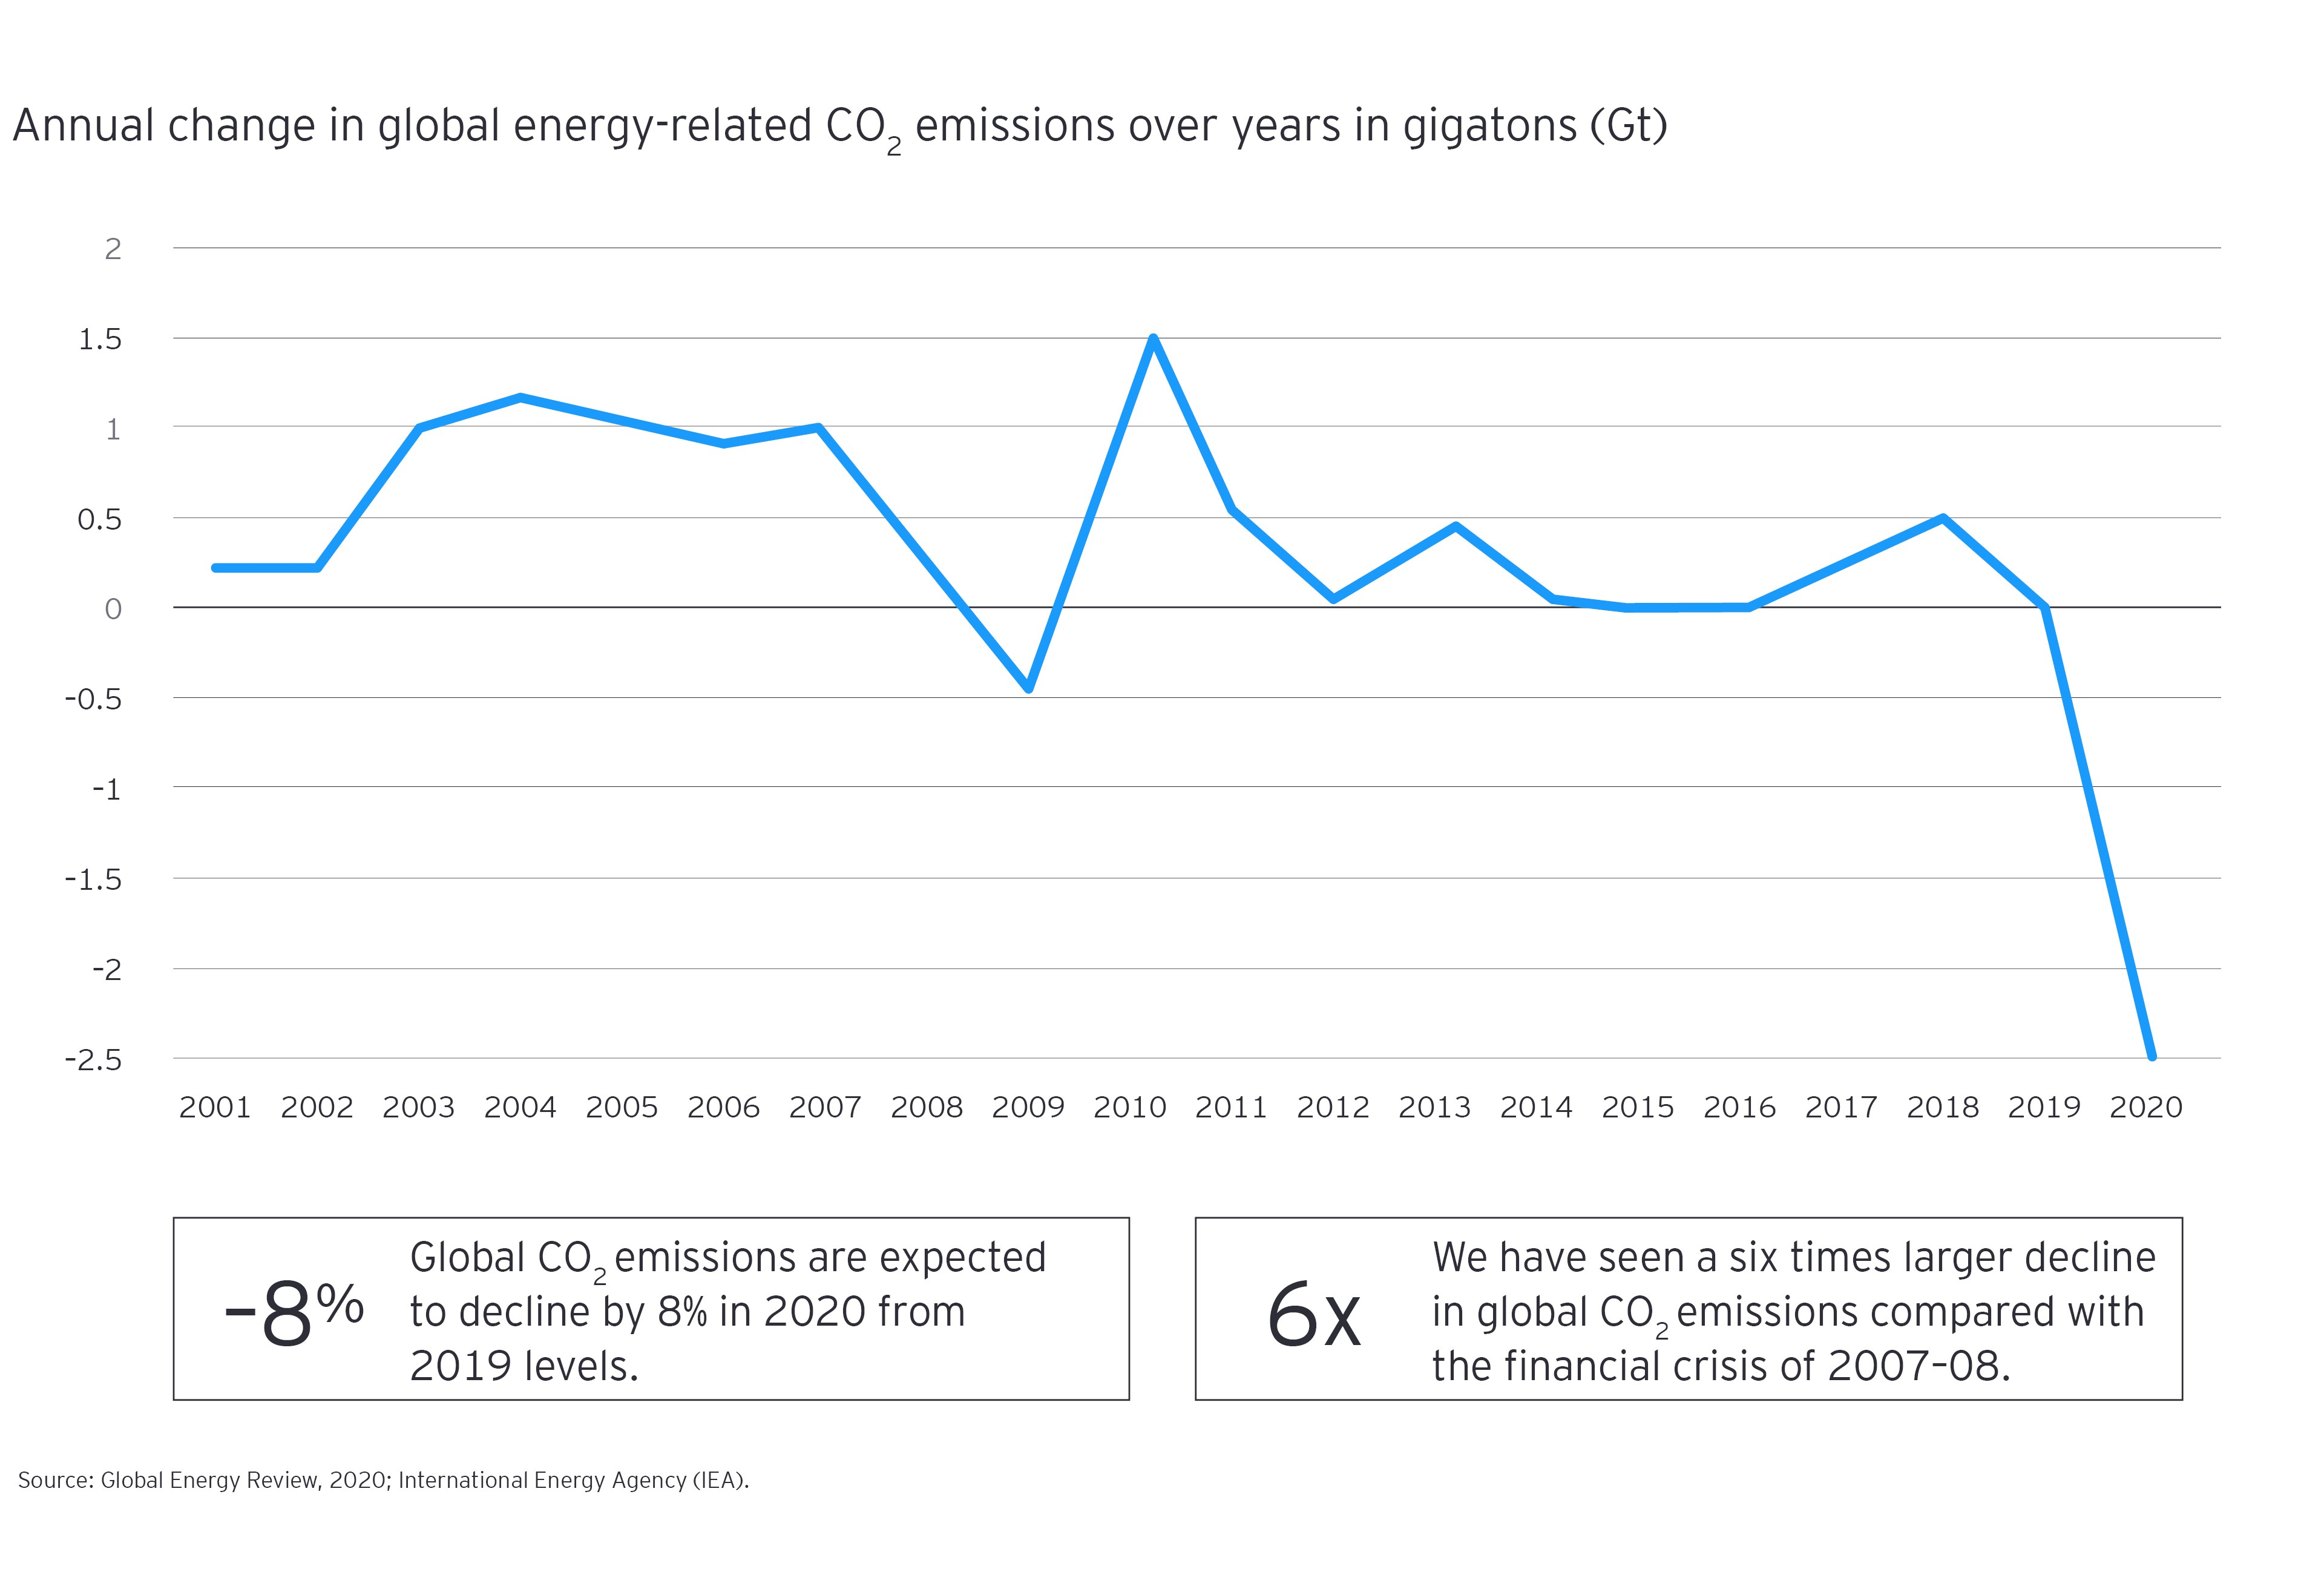 Annual change in global energy related co2 emissions over years in gigatons